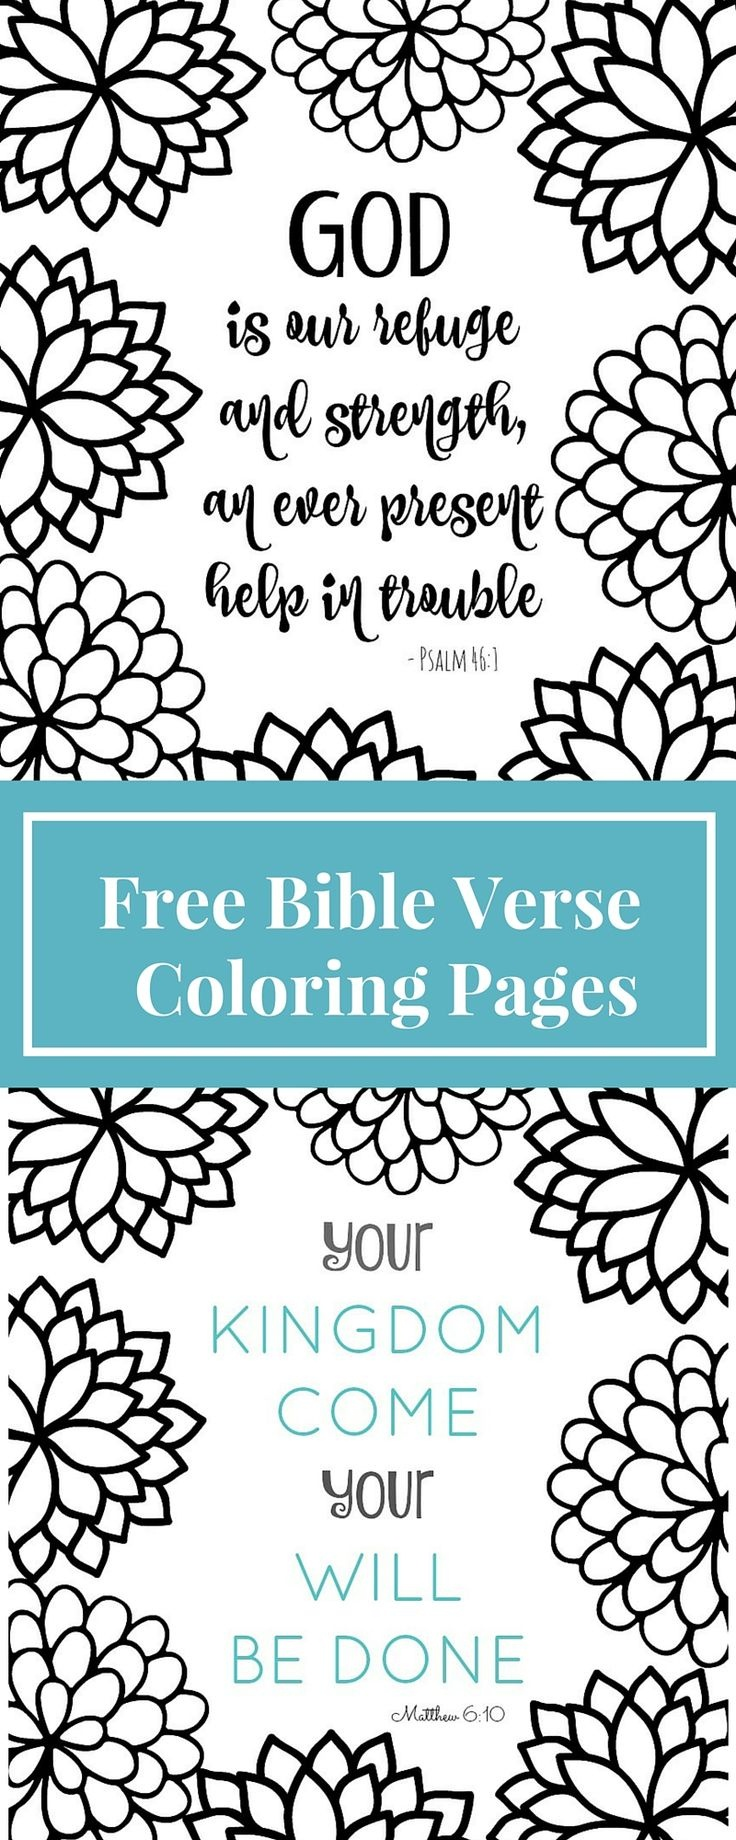 Coloring Book World ~ Christian Coloring Pages For Adults Free - Free Printable Bible Verses Adults